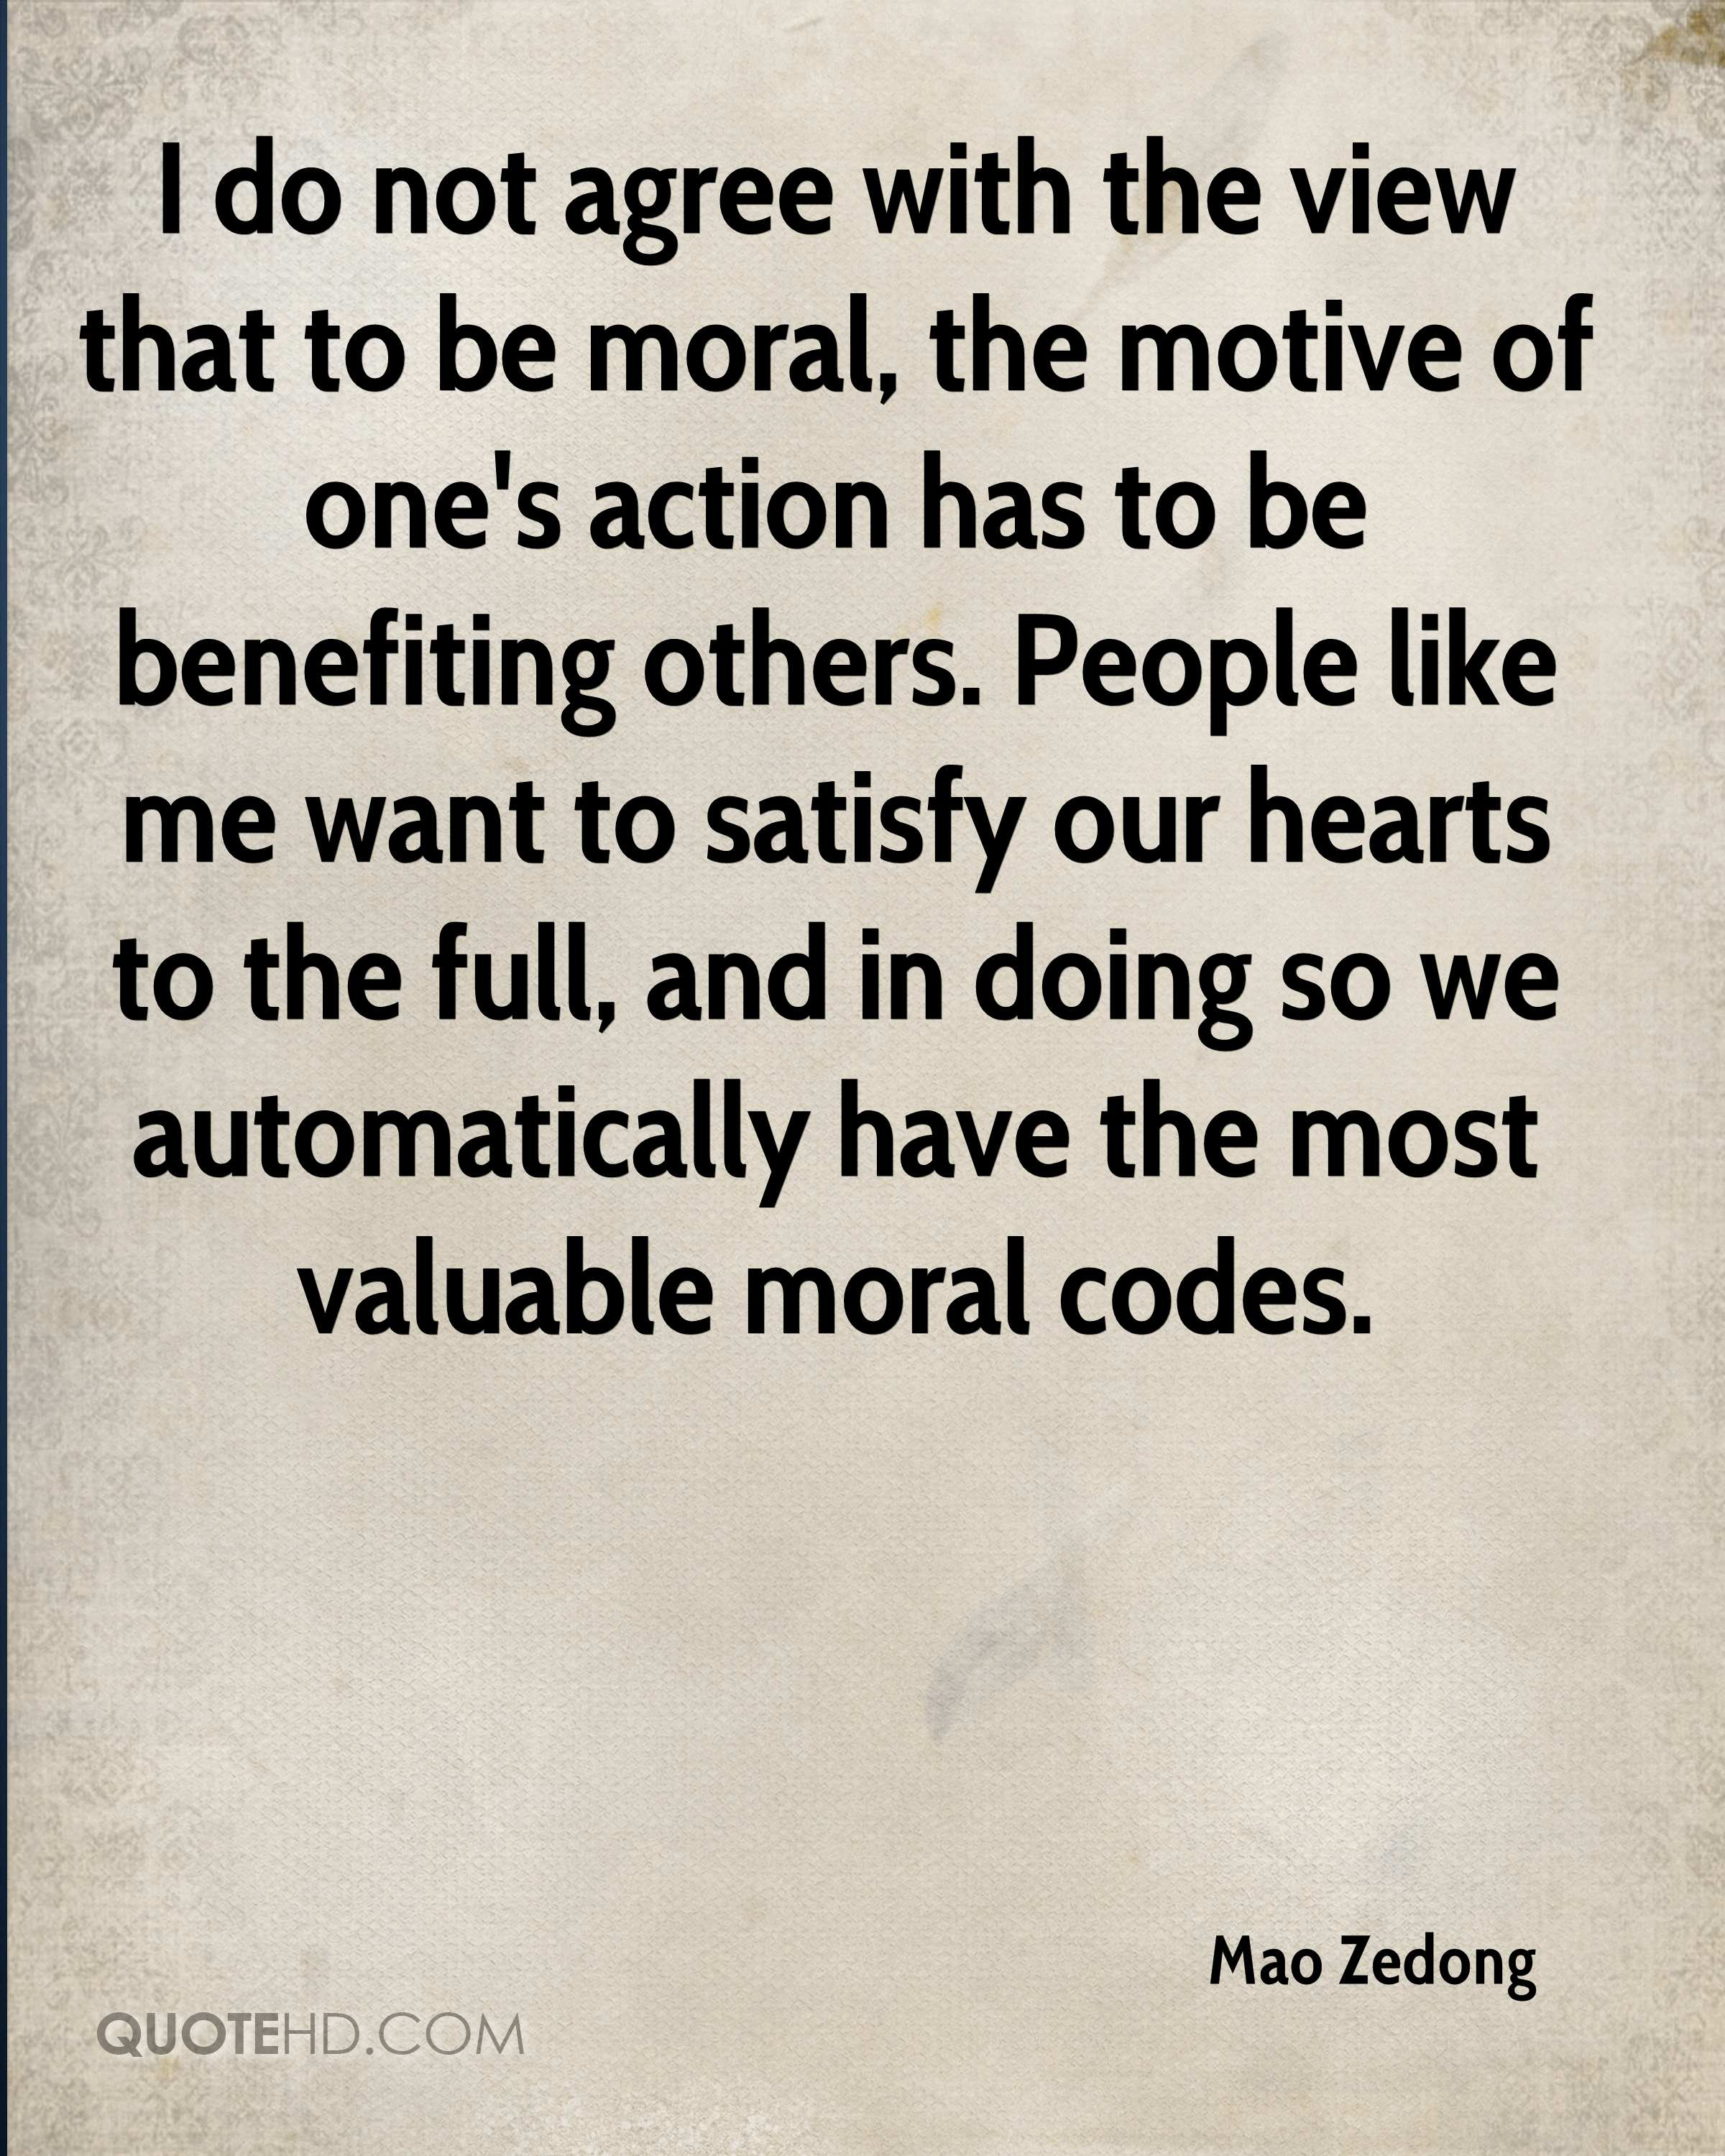 I do not agree with the view that to be moral, the motive of one's action has to be benefiting others. People like me want to satisfy our hearts to the full, and in doing so we automatically have the most valuable moral codes.